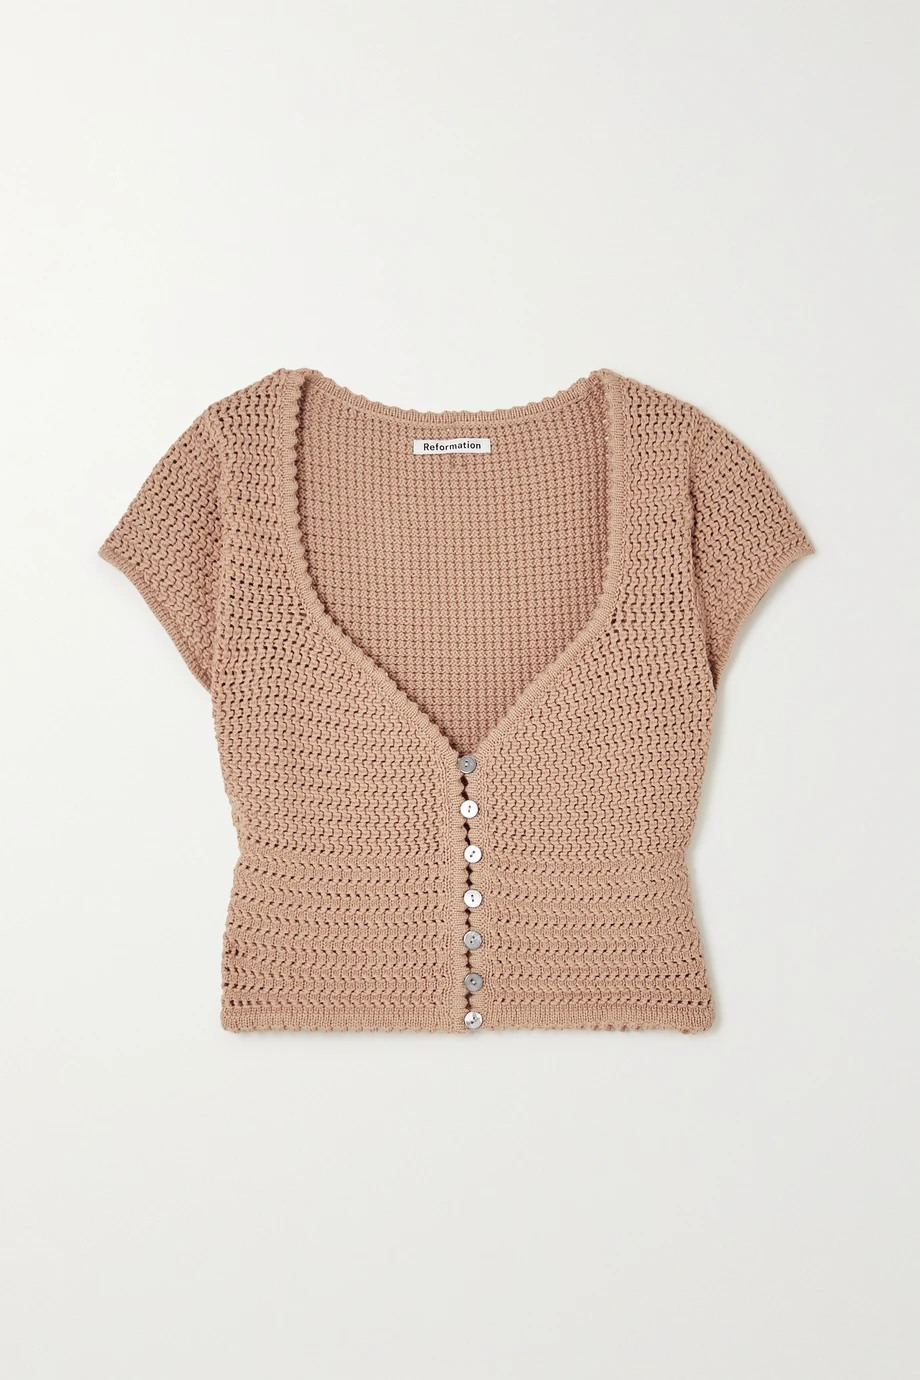 reformation-caterina-open-knit-organic-cotton-top